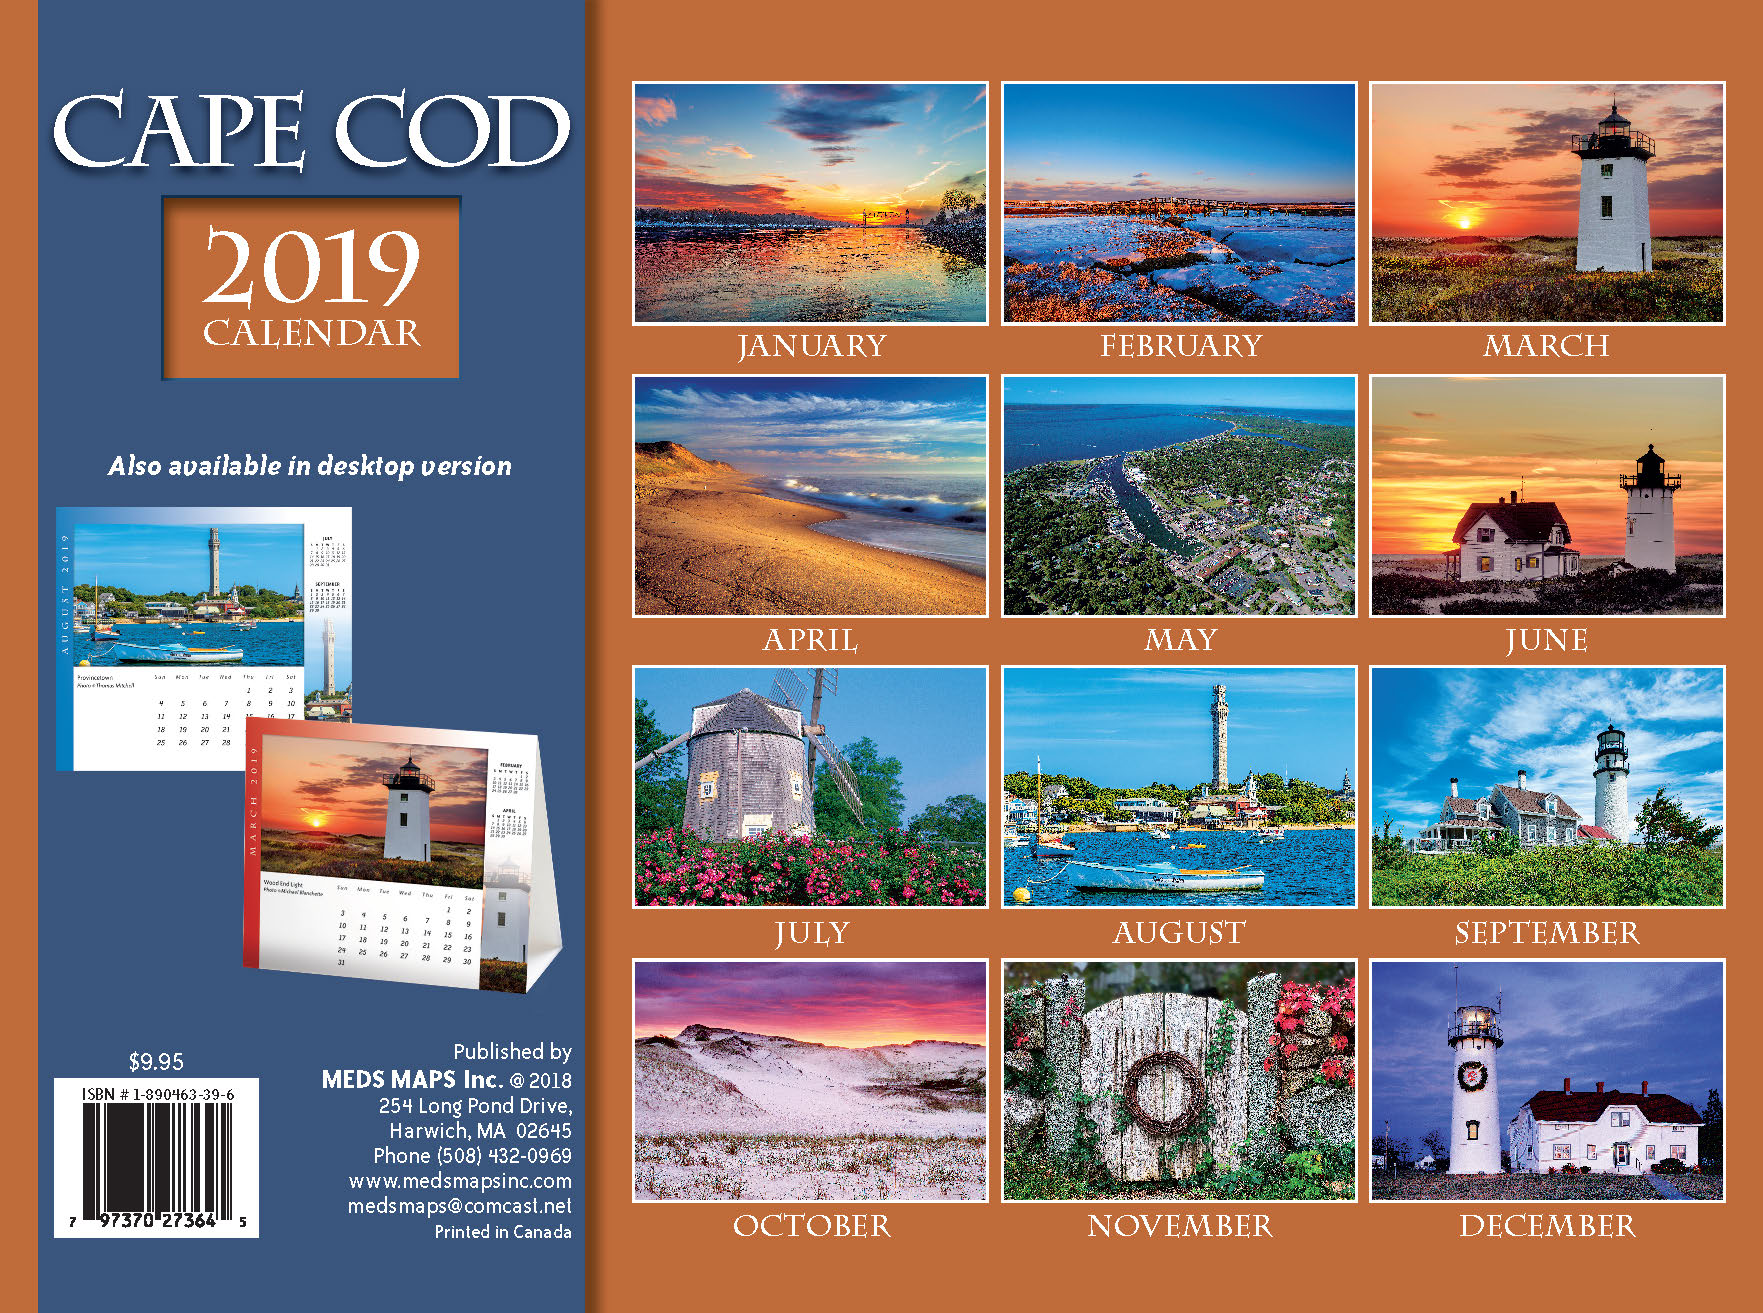 Cape cod coupons 2019